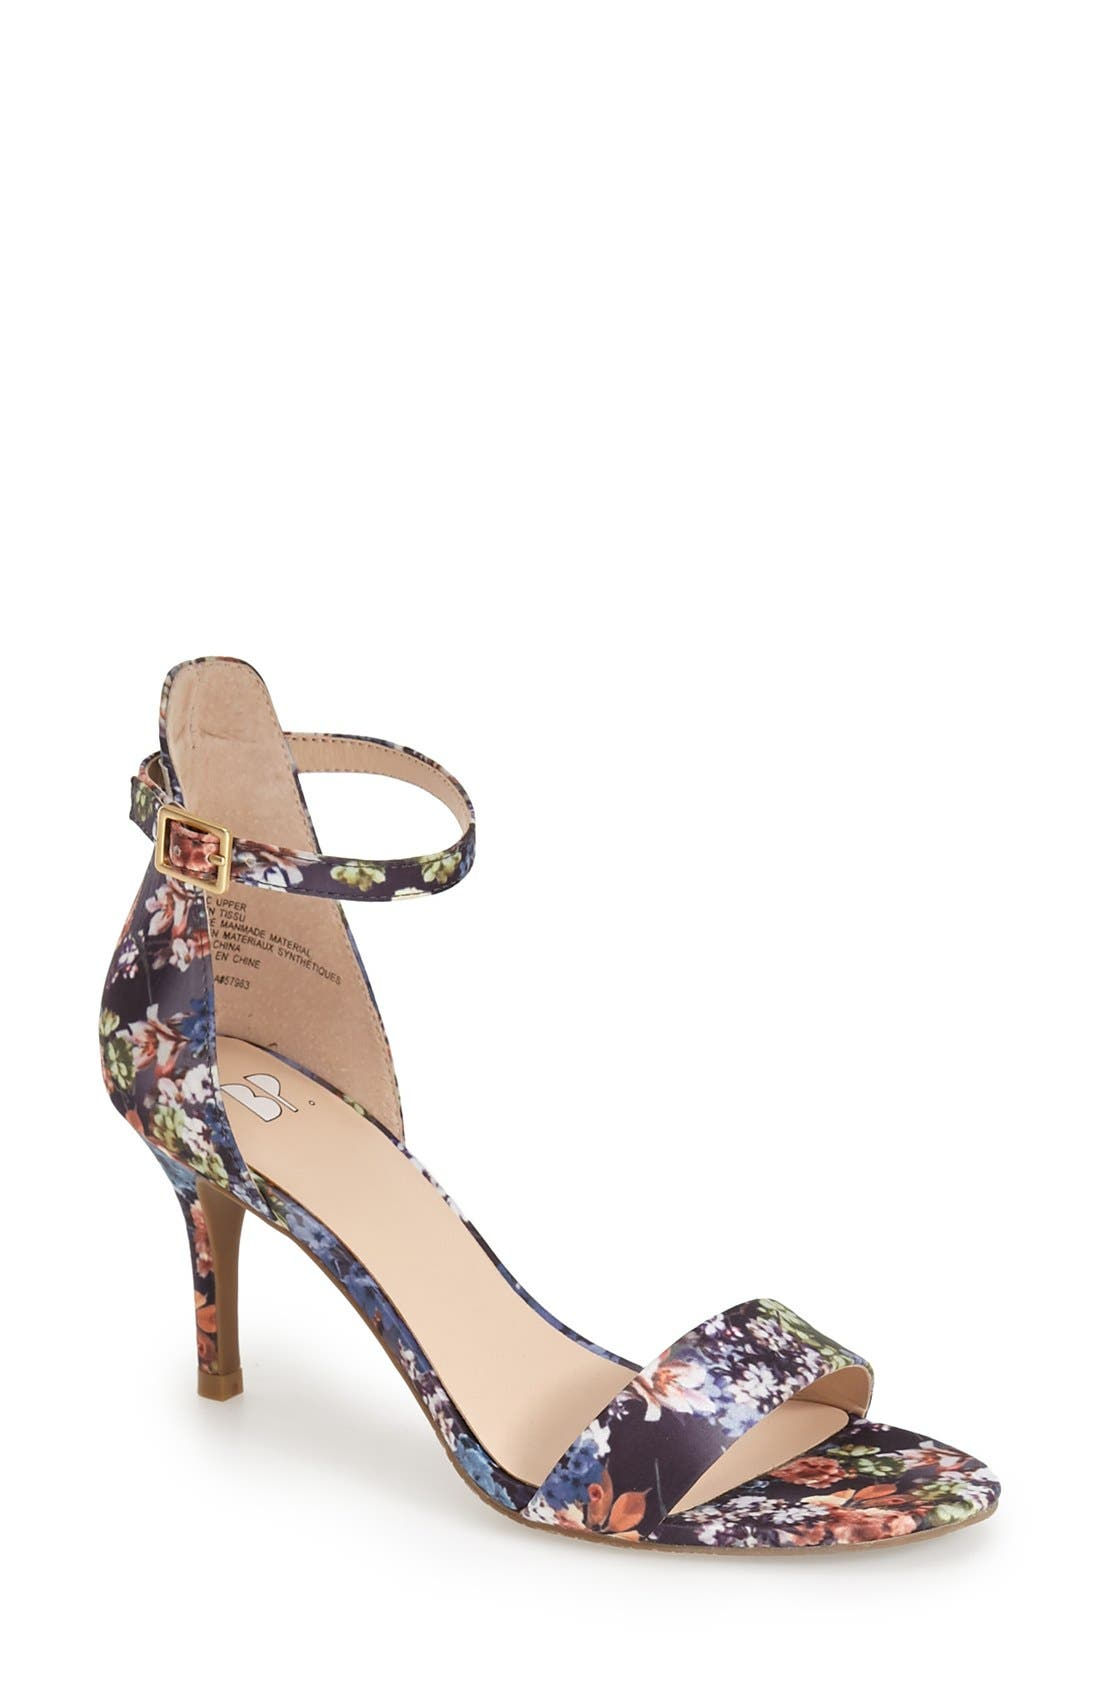 'Luminate' Open Toe Dress Sandal,                             Main thumbnail 14, color,